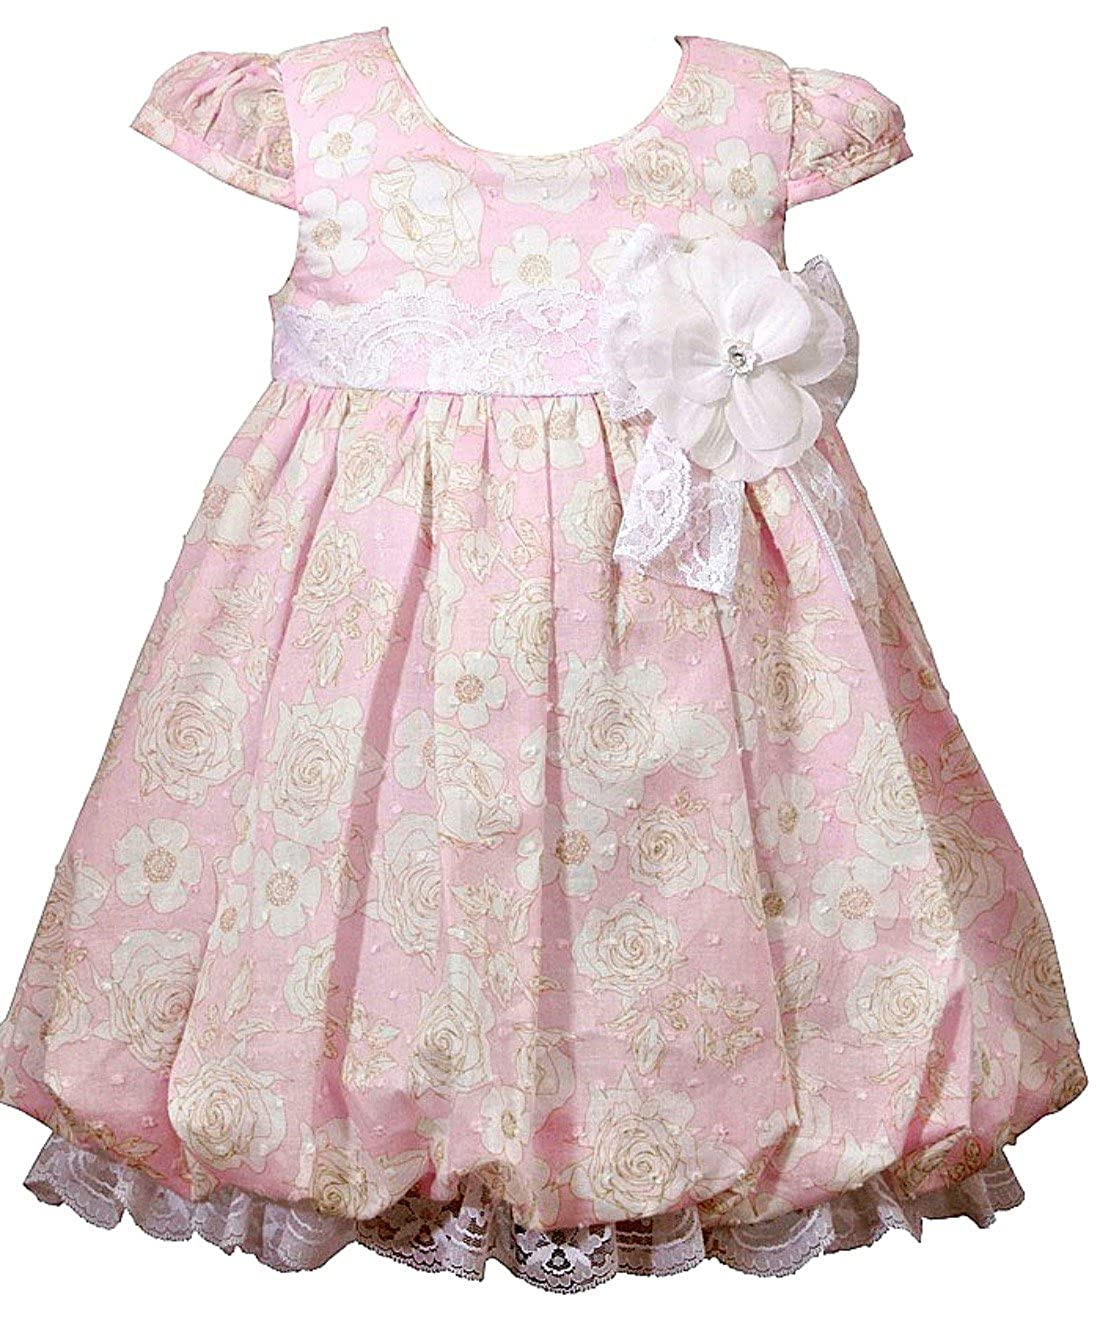 14c366cec68d Amazon.com  Bonnie Jean Baby Girls Pink Floral Vintage Inspired Dress 3-6  months  Clothing